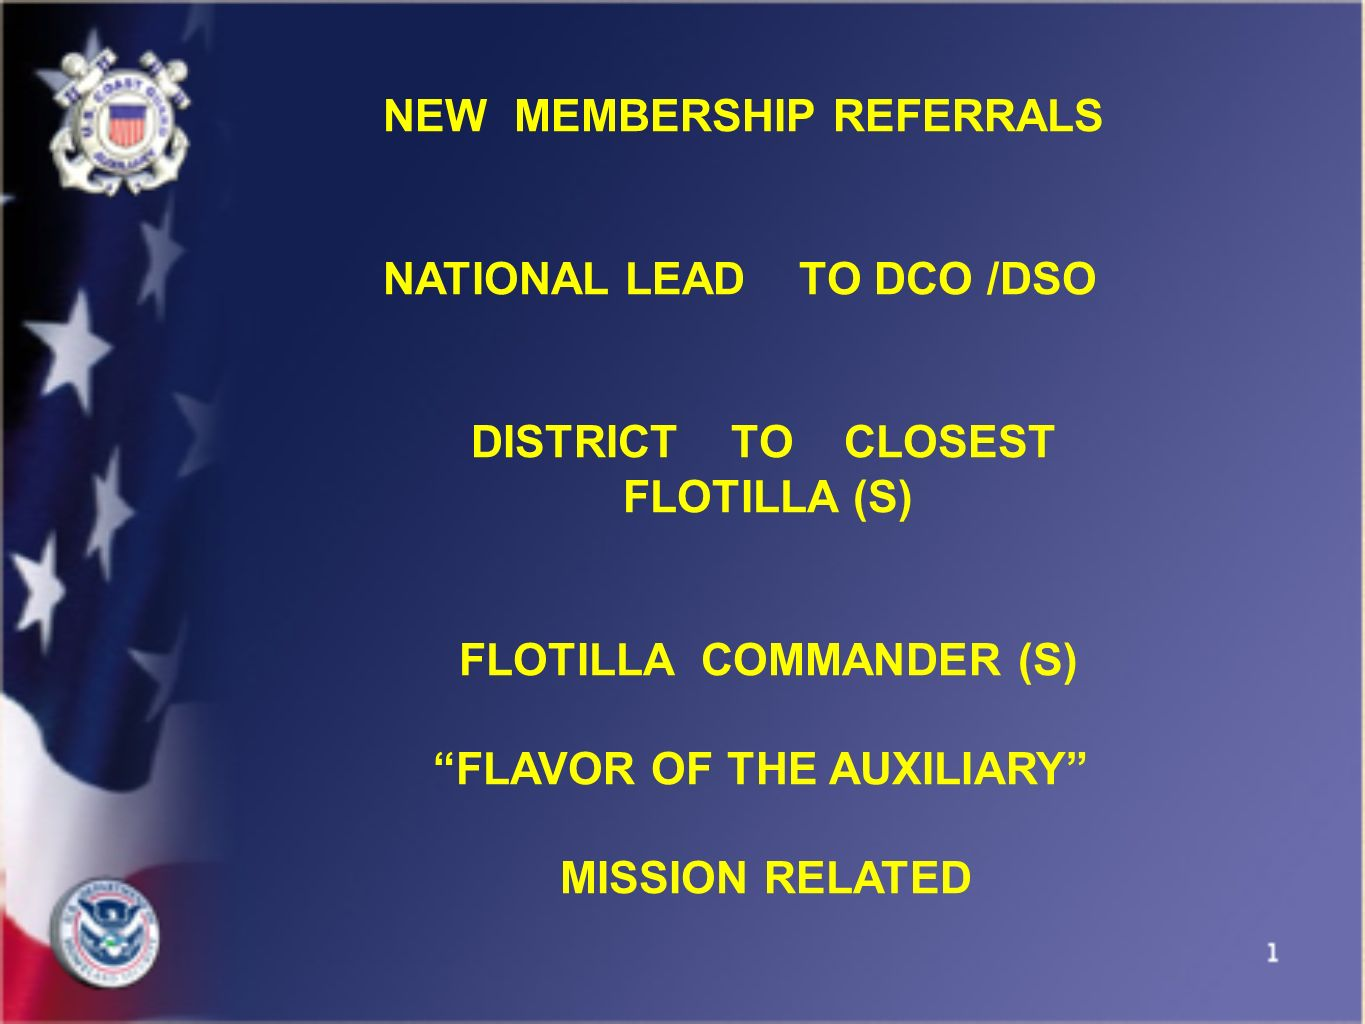 NEW MEMBERSHIP REFERRALS NATIONAL LEAD TO DCO /DSO DISTRICT TO CLOSEST FLOTILLA (S) FLOTILLA COMMANDER (S) FLAVOR OF THE AUXILIARY MISSION RELATED